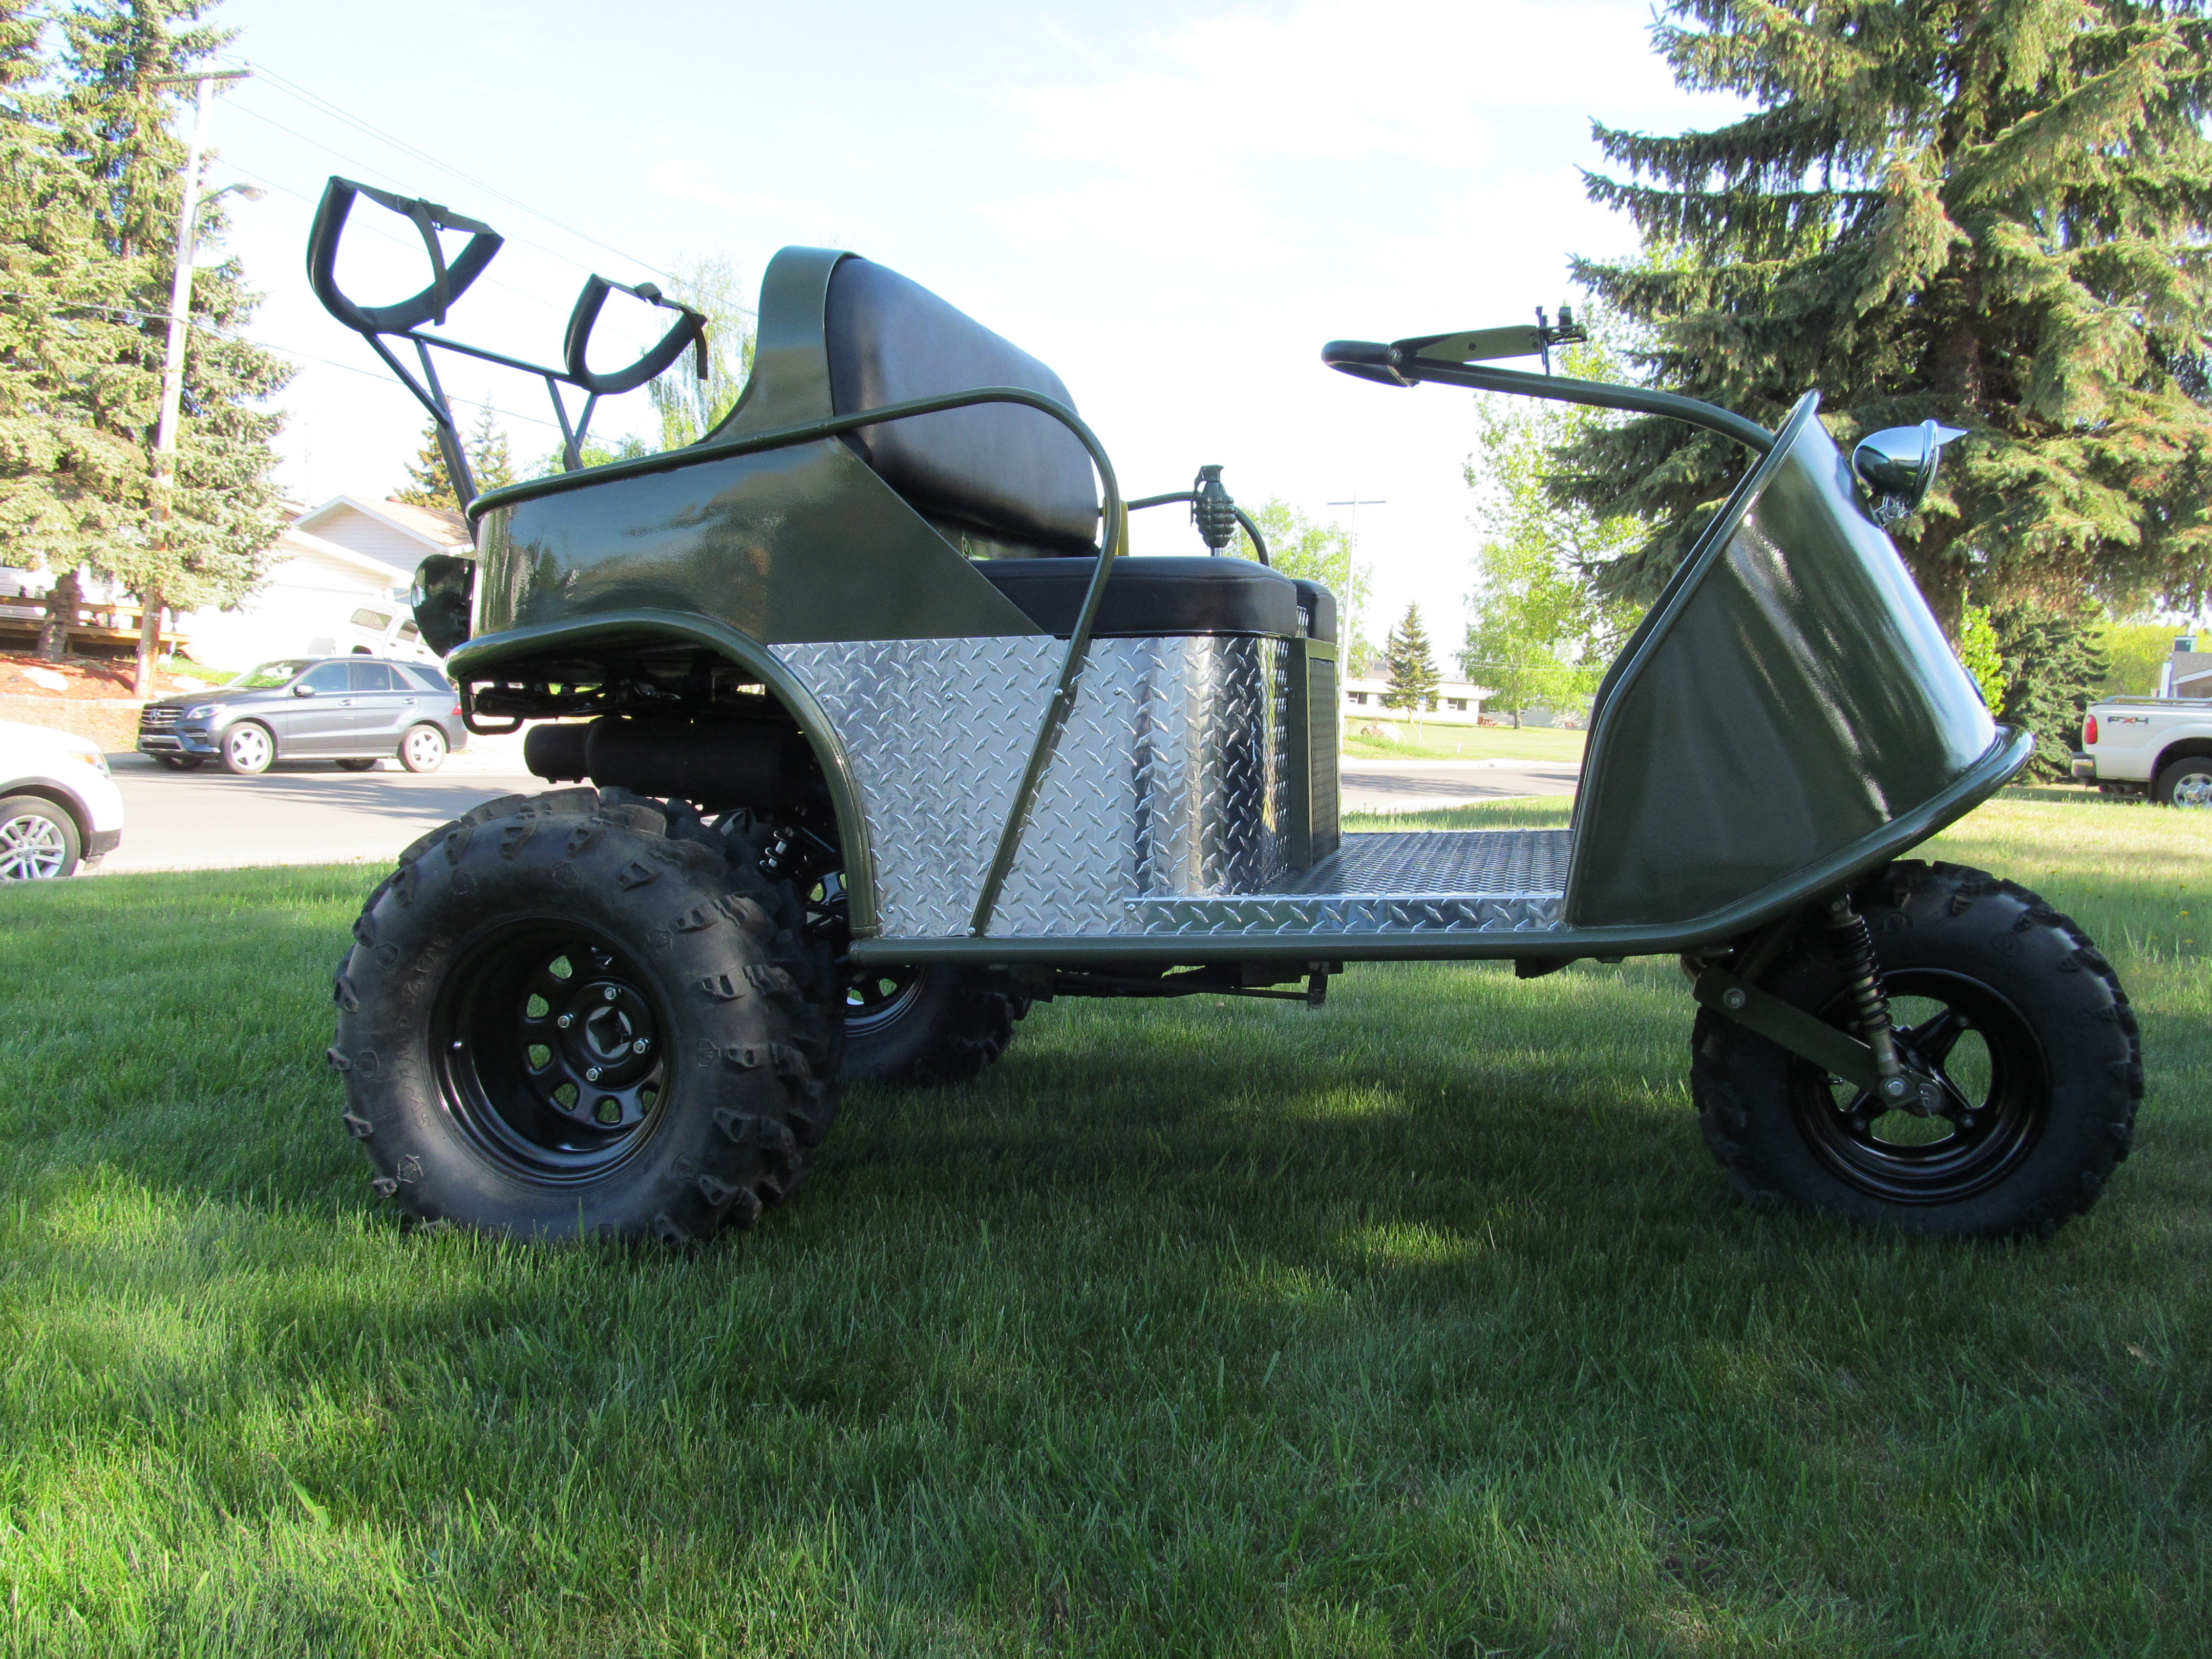 Honda Ct Specs Ehow together with Atc R Us moreover F D E F Ee B Aefb Beee also D New Never Mounted X X Mud Bug Tires Img moreover D Honda Powered Wheel Golf Cart Img. on 1982 honda atc 110